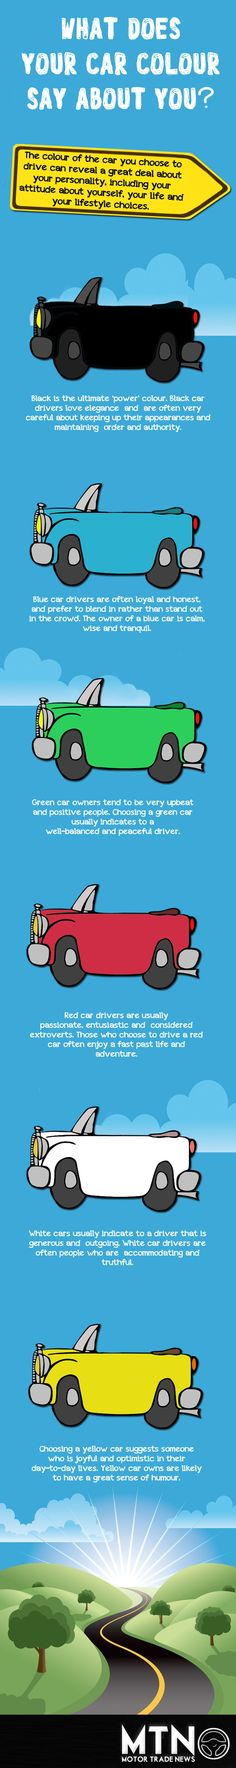 What Does Your Car Colour Say About You [INFOGRAPHIC] #car#colour